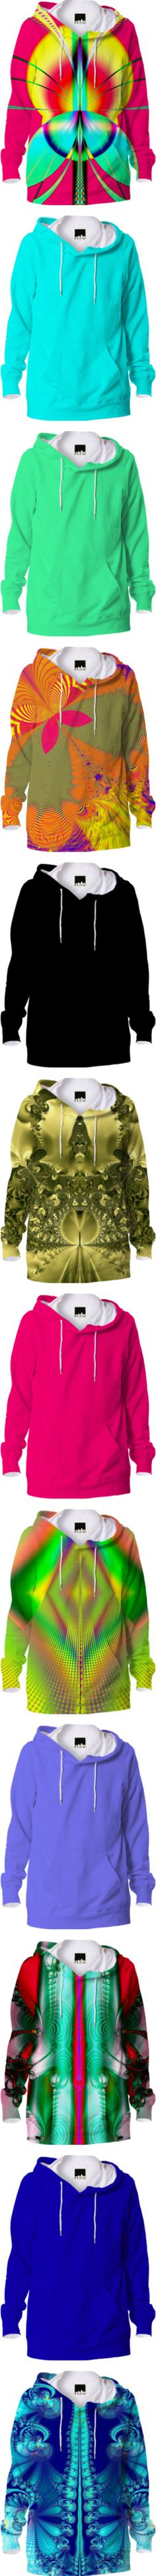 * MY COTTON #HOODIES FOR SALE * by artist4god-rose-santuci-sofranko on Polyvore featuring polyvore, fashion, clothing, tops, hoodies, butterflies, coats, fire, fractal, hood, hooded sweatshirt, butterfly print top, butterfly top, cotton hoodie, hooded top, jackets, cotton hooded sweatshirt, hooded pullover, aqua top, green top, mint green hoodies, sweatshirts hoodies, green hooded sweatshirt, shirts, black shirt, black hooded sweatshirt, black hoodies, heaven, cotton hoodies, happiness, blue…